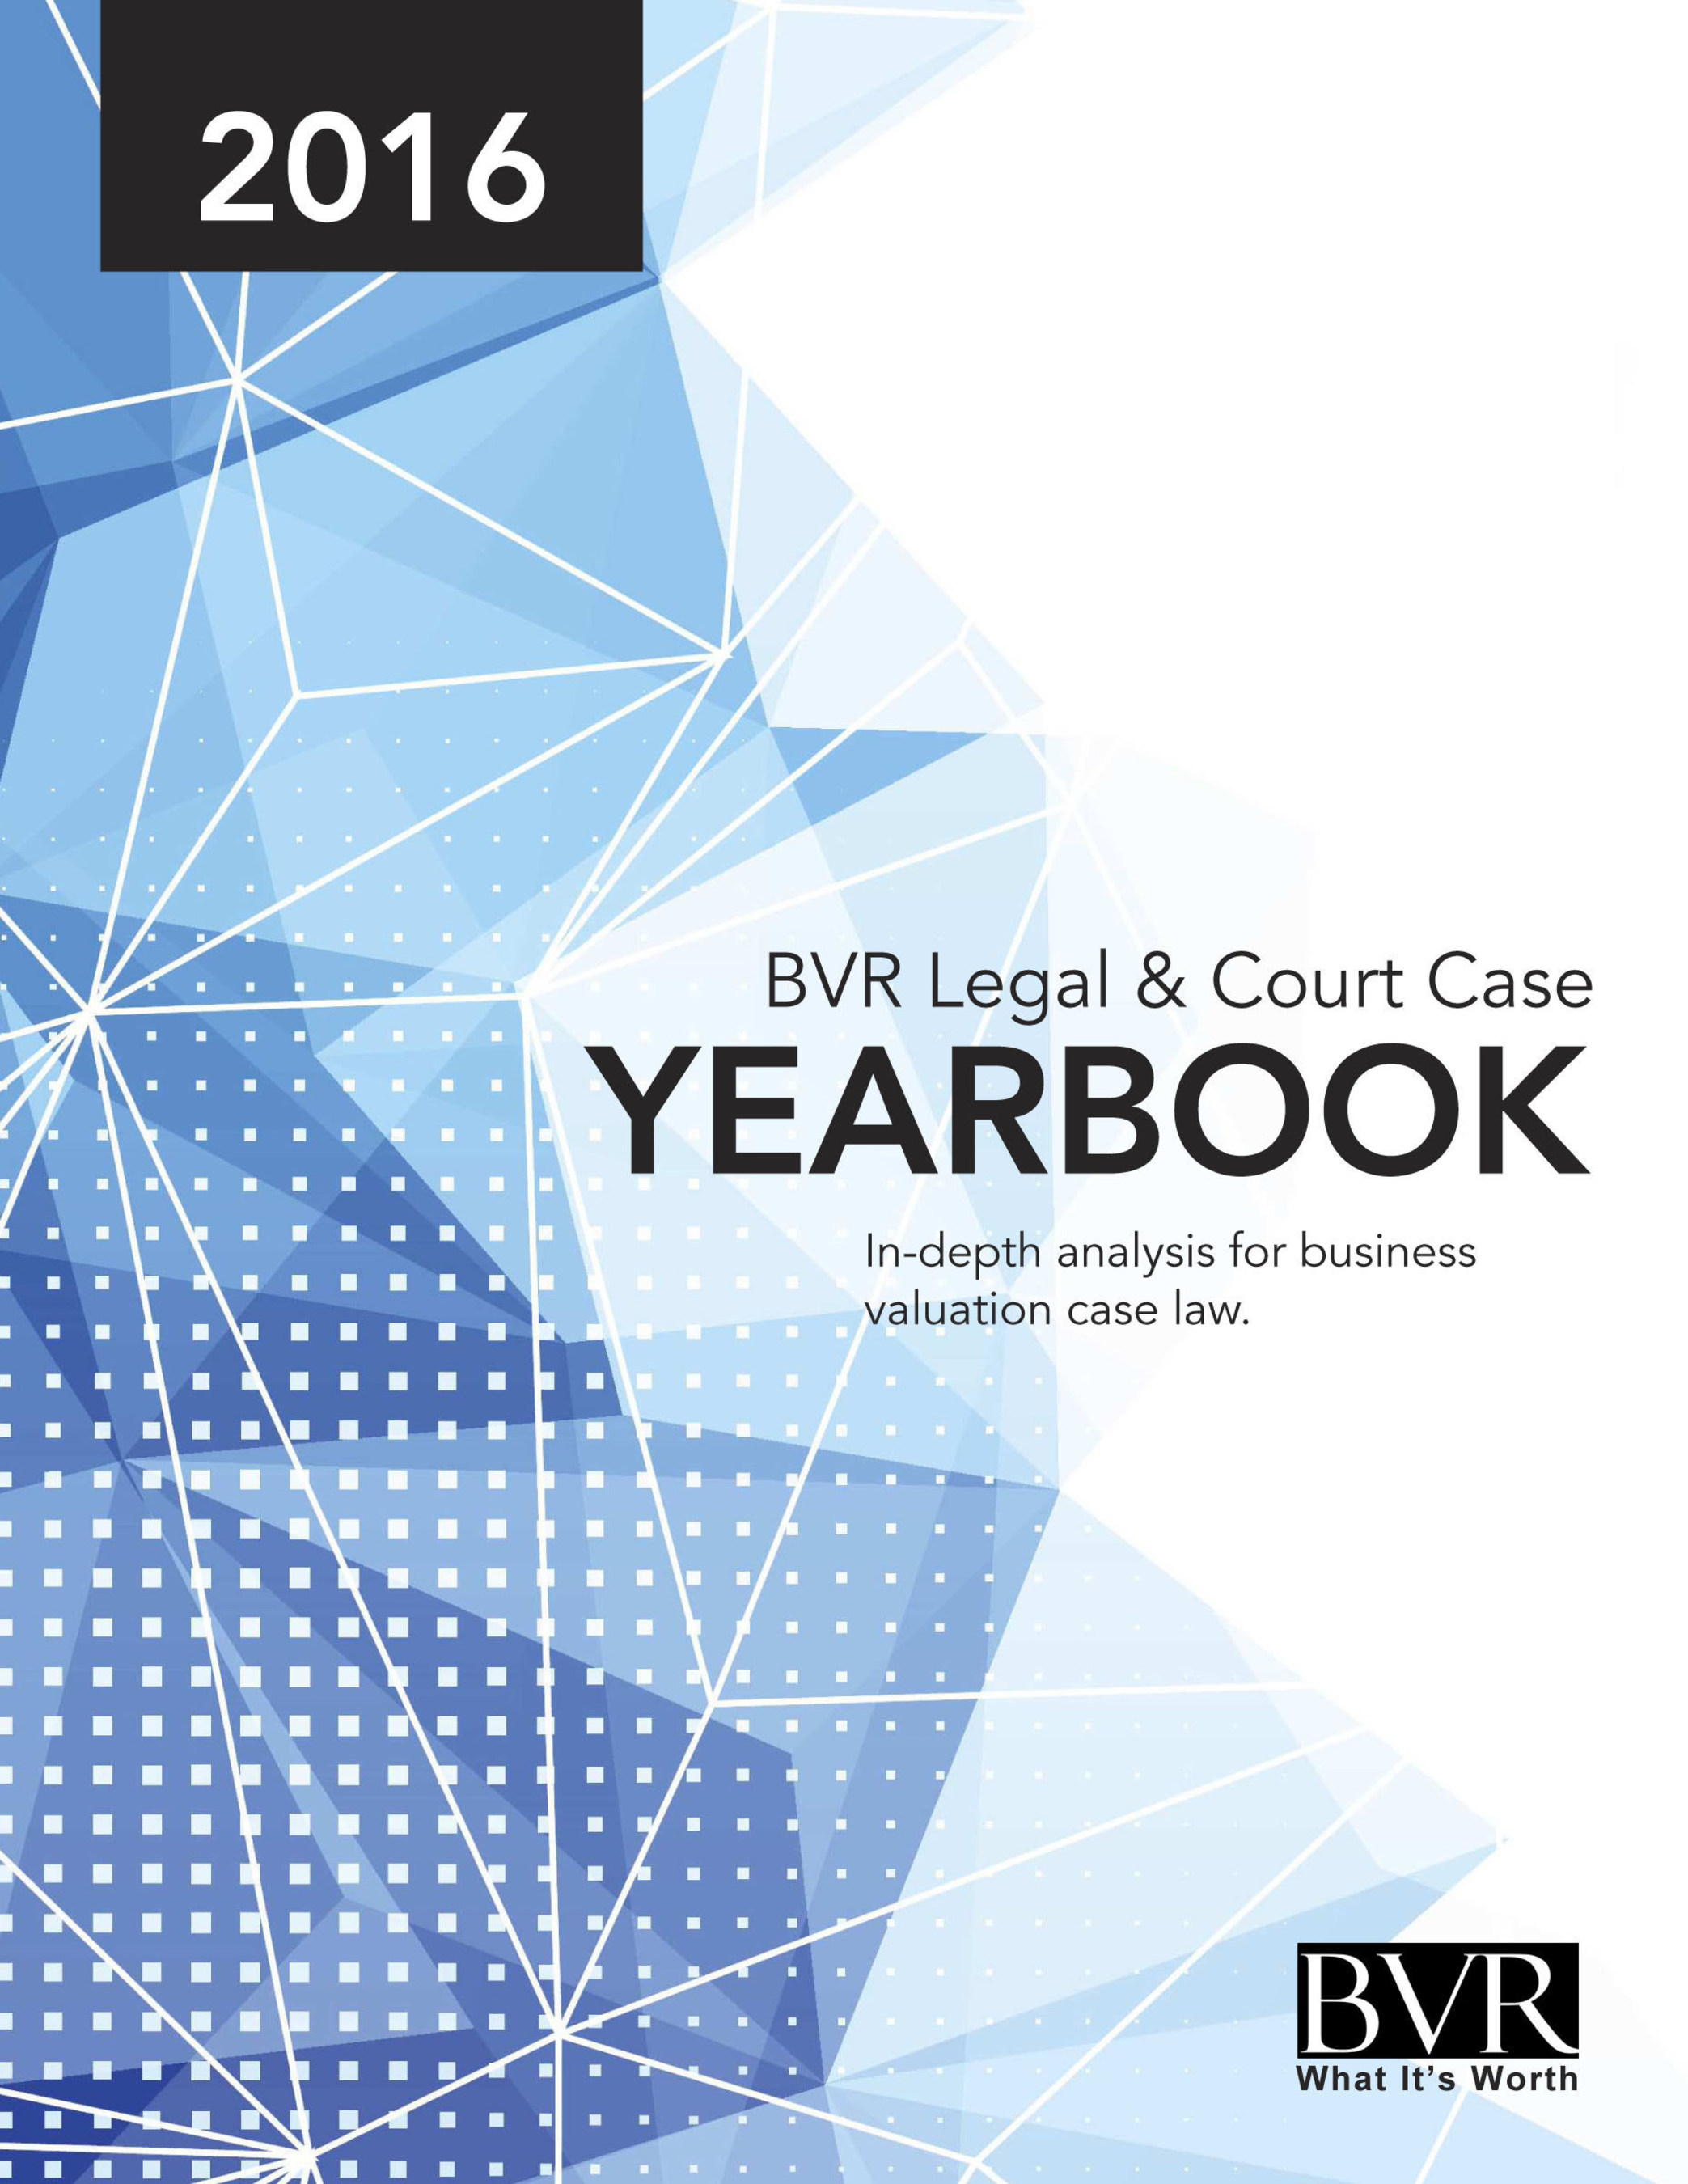 The 2016 BVR Legal and Court Case Yearbook includes nearly 100 digested business valuation cases.